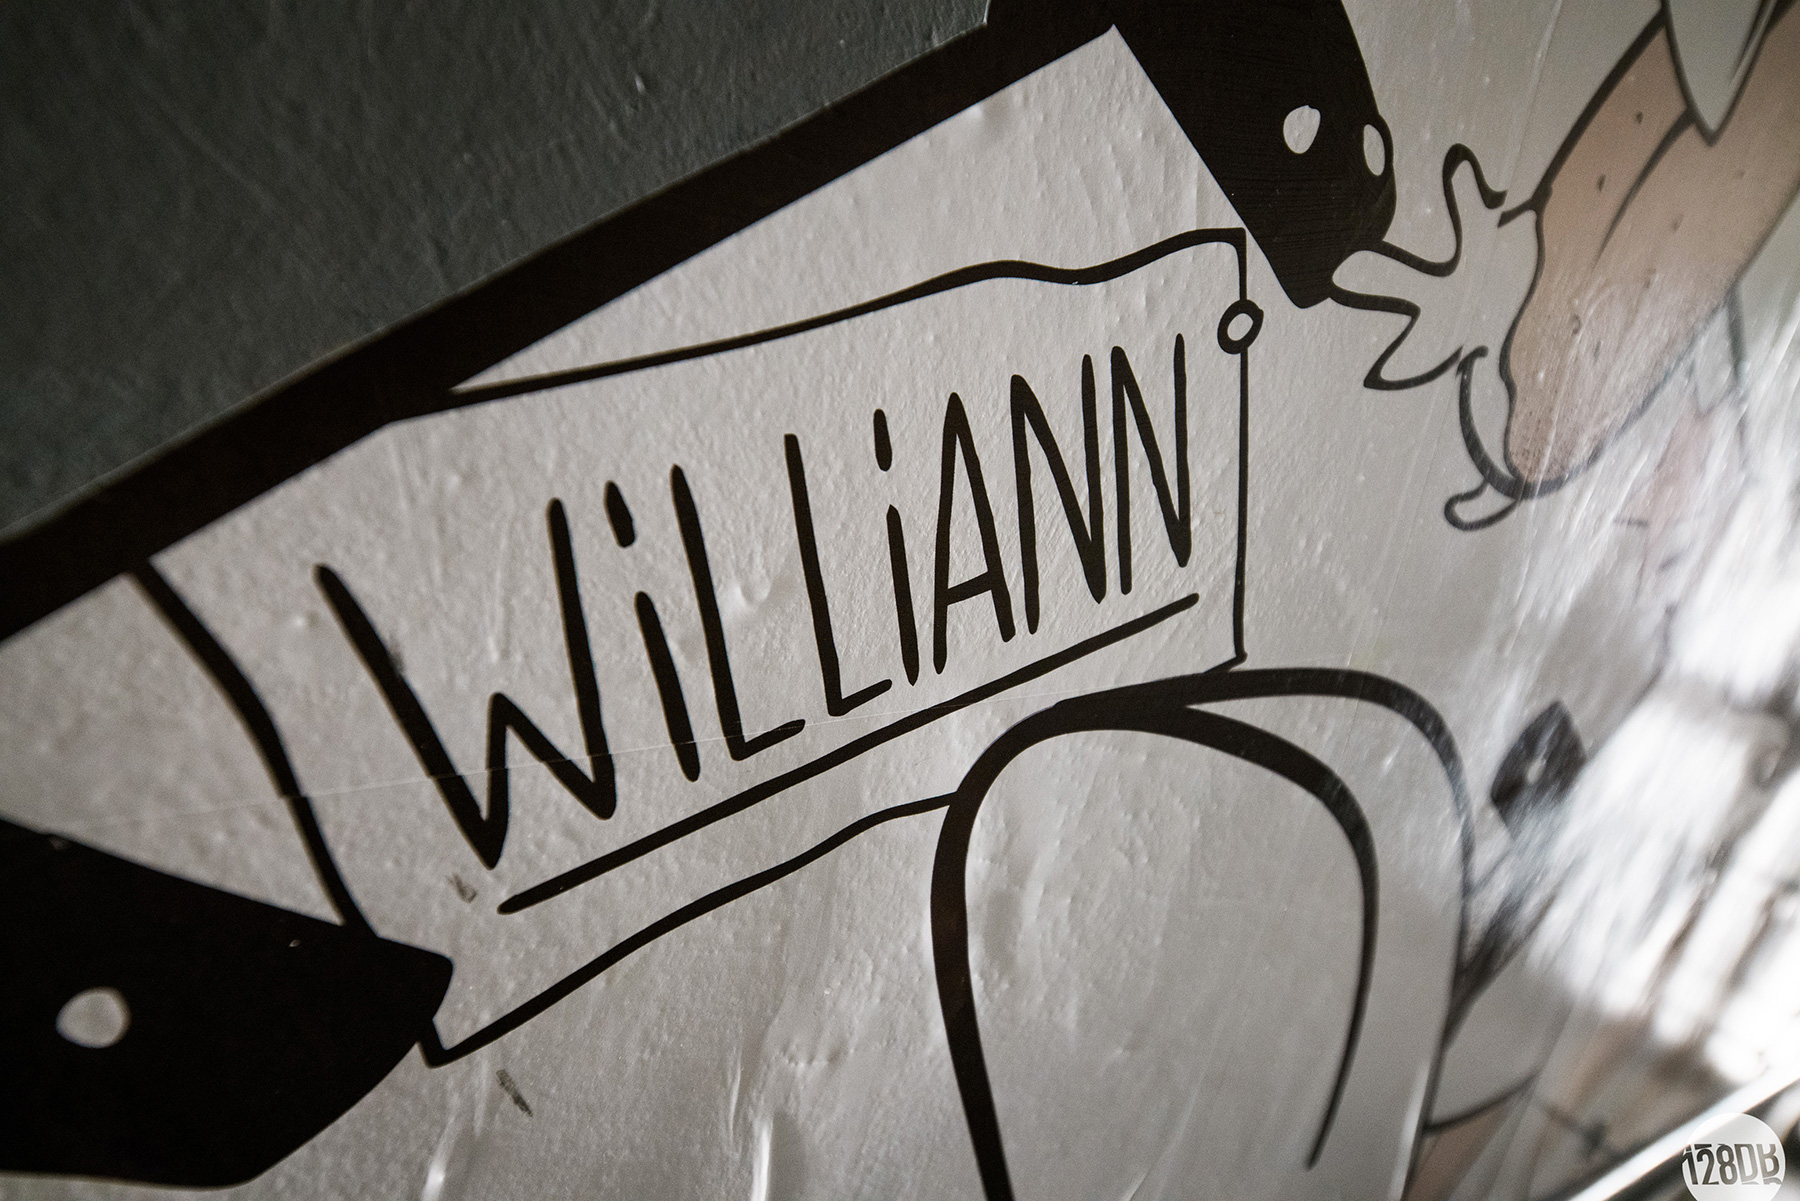 Williann-Graffalgar-128db